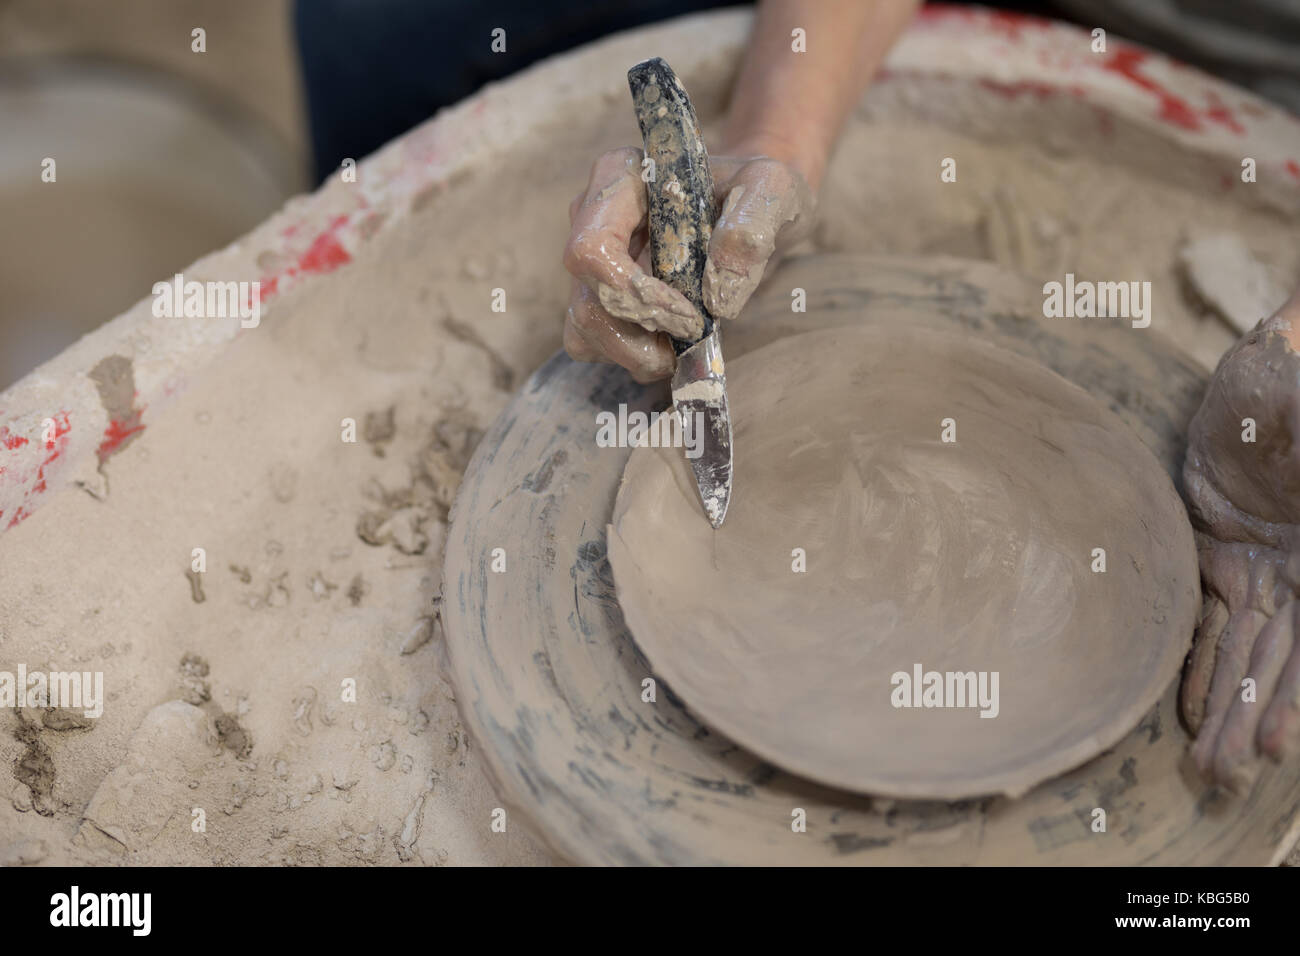 Female potter molding plate with hand tool in pottery workshop - Stock Image